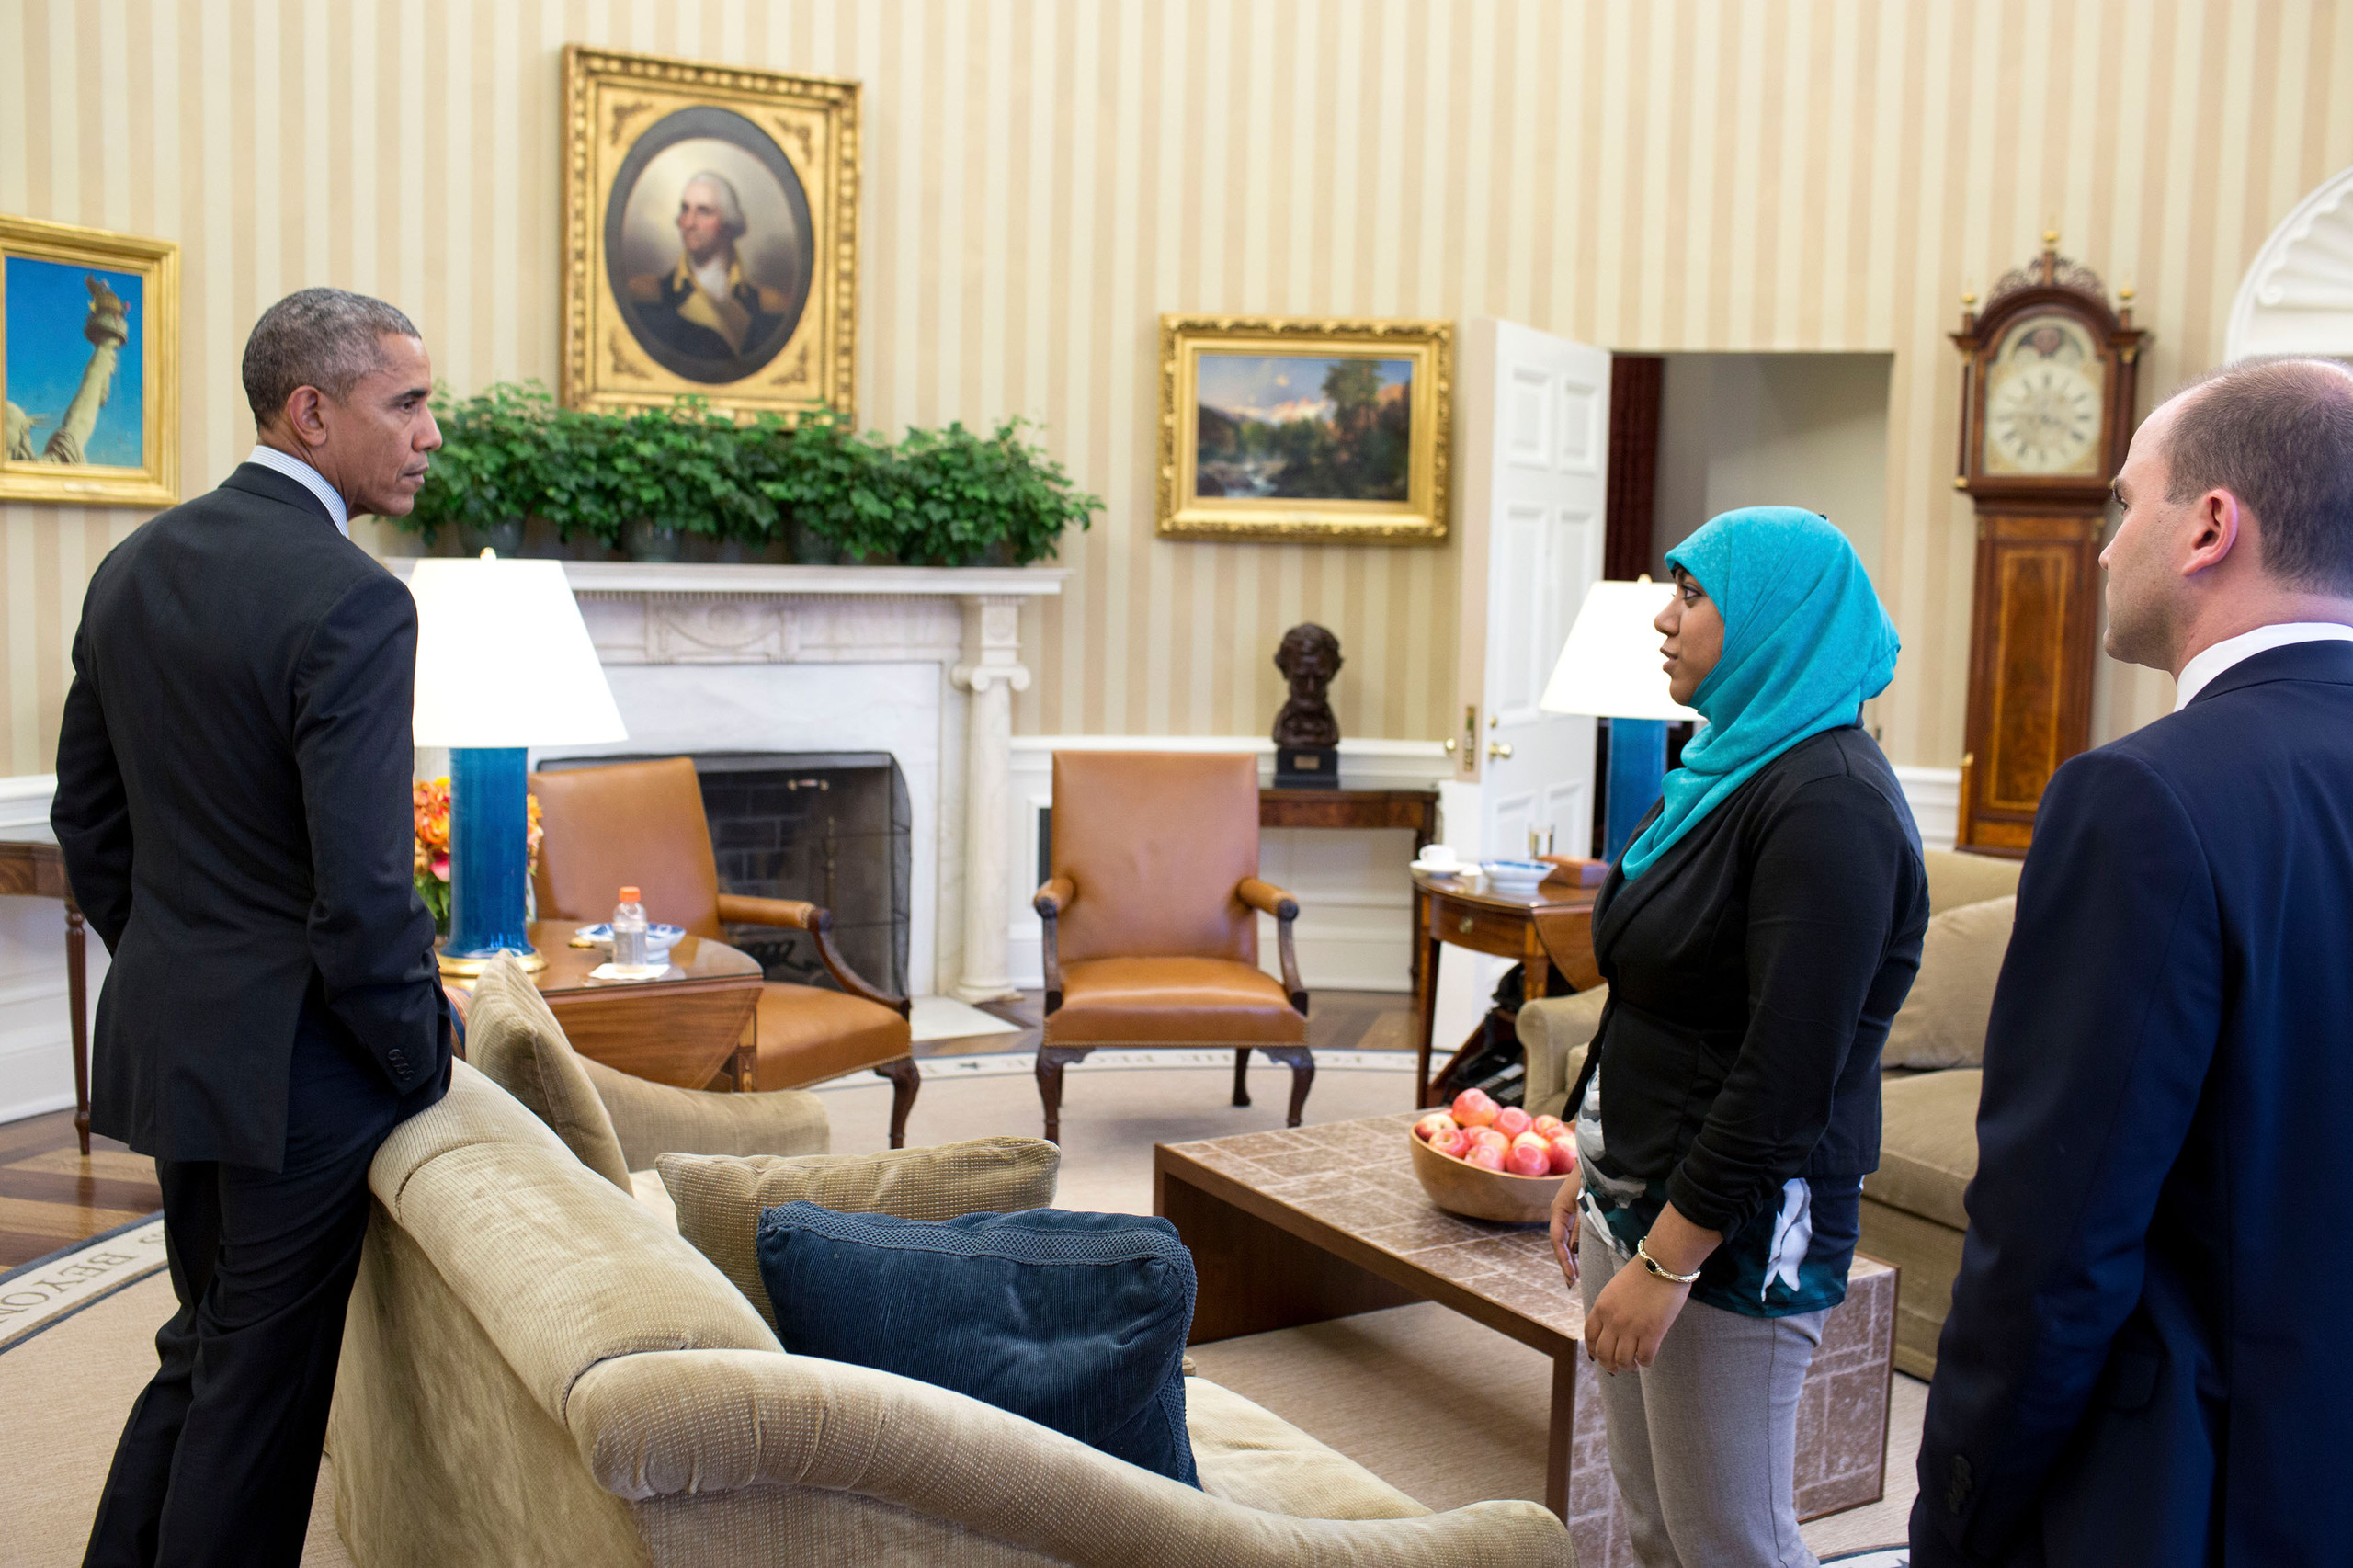 President Barack Obama holds American Muslim leaders meeting prep in the Oval Office, Feb. 4, 2015. Participants are:  Ben Rhodes, Deputy National Security Advisor for Strategic Communications and Rumana Ahmed, Advisor to the Deputy National Security Advisor, NSC. (Official White House Photo by Pete Souza)  This photograph is provided by THE WHITE HOUSE as a courtesy and may be printed by the subject(s) in the photograph for personal use only. The photograph may not be manipulated in any way and may not otherwise be reproduced, disseminated or broadcast, without the written permission of the White House Photo Office. This photograph may not be used in any commercial or political materials, advertisements, emails, products, promotions that in any way suggests approval or endorsement of the President, the First Family, or the White House. Consistent with these restrictions, a commercial printer may produce print(s) of the photograph for the subject(s) personal use.